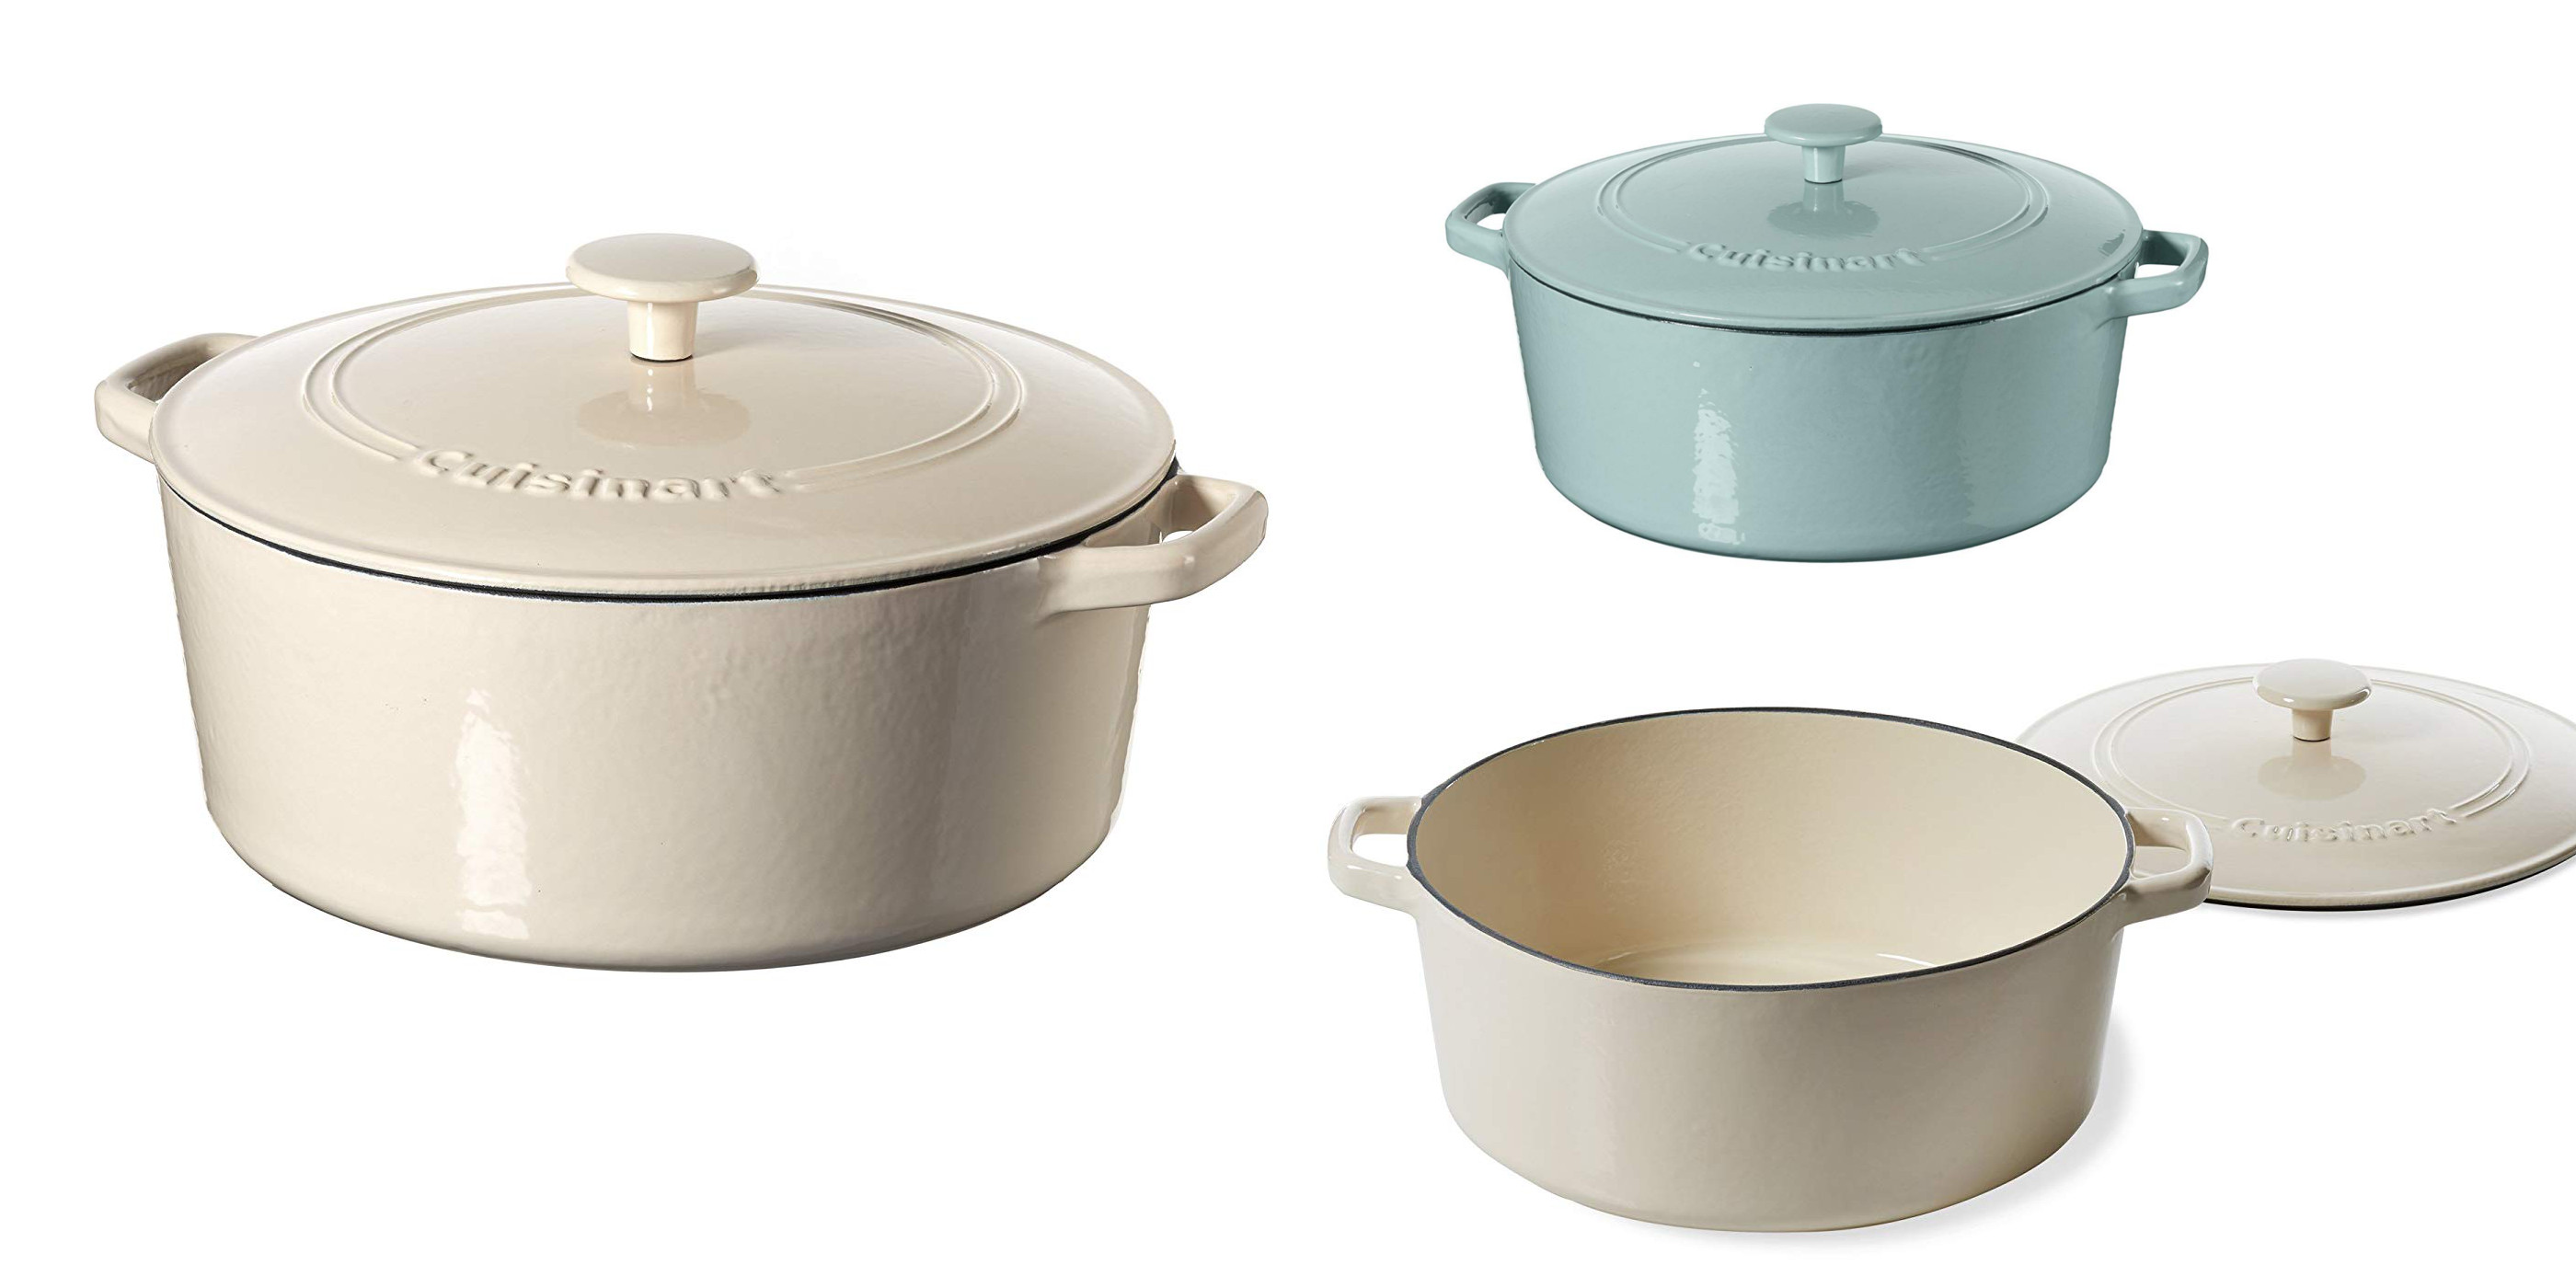 Don't miss today's Cuisinart Cast Iron Casserole Gold Box sale from $55 (Up to $60 off)